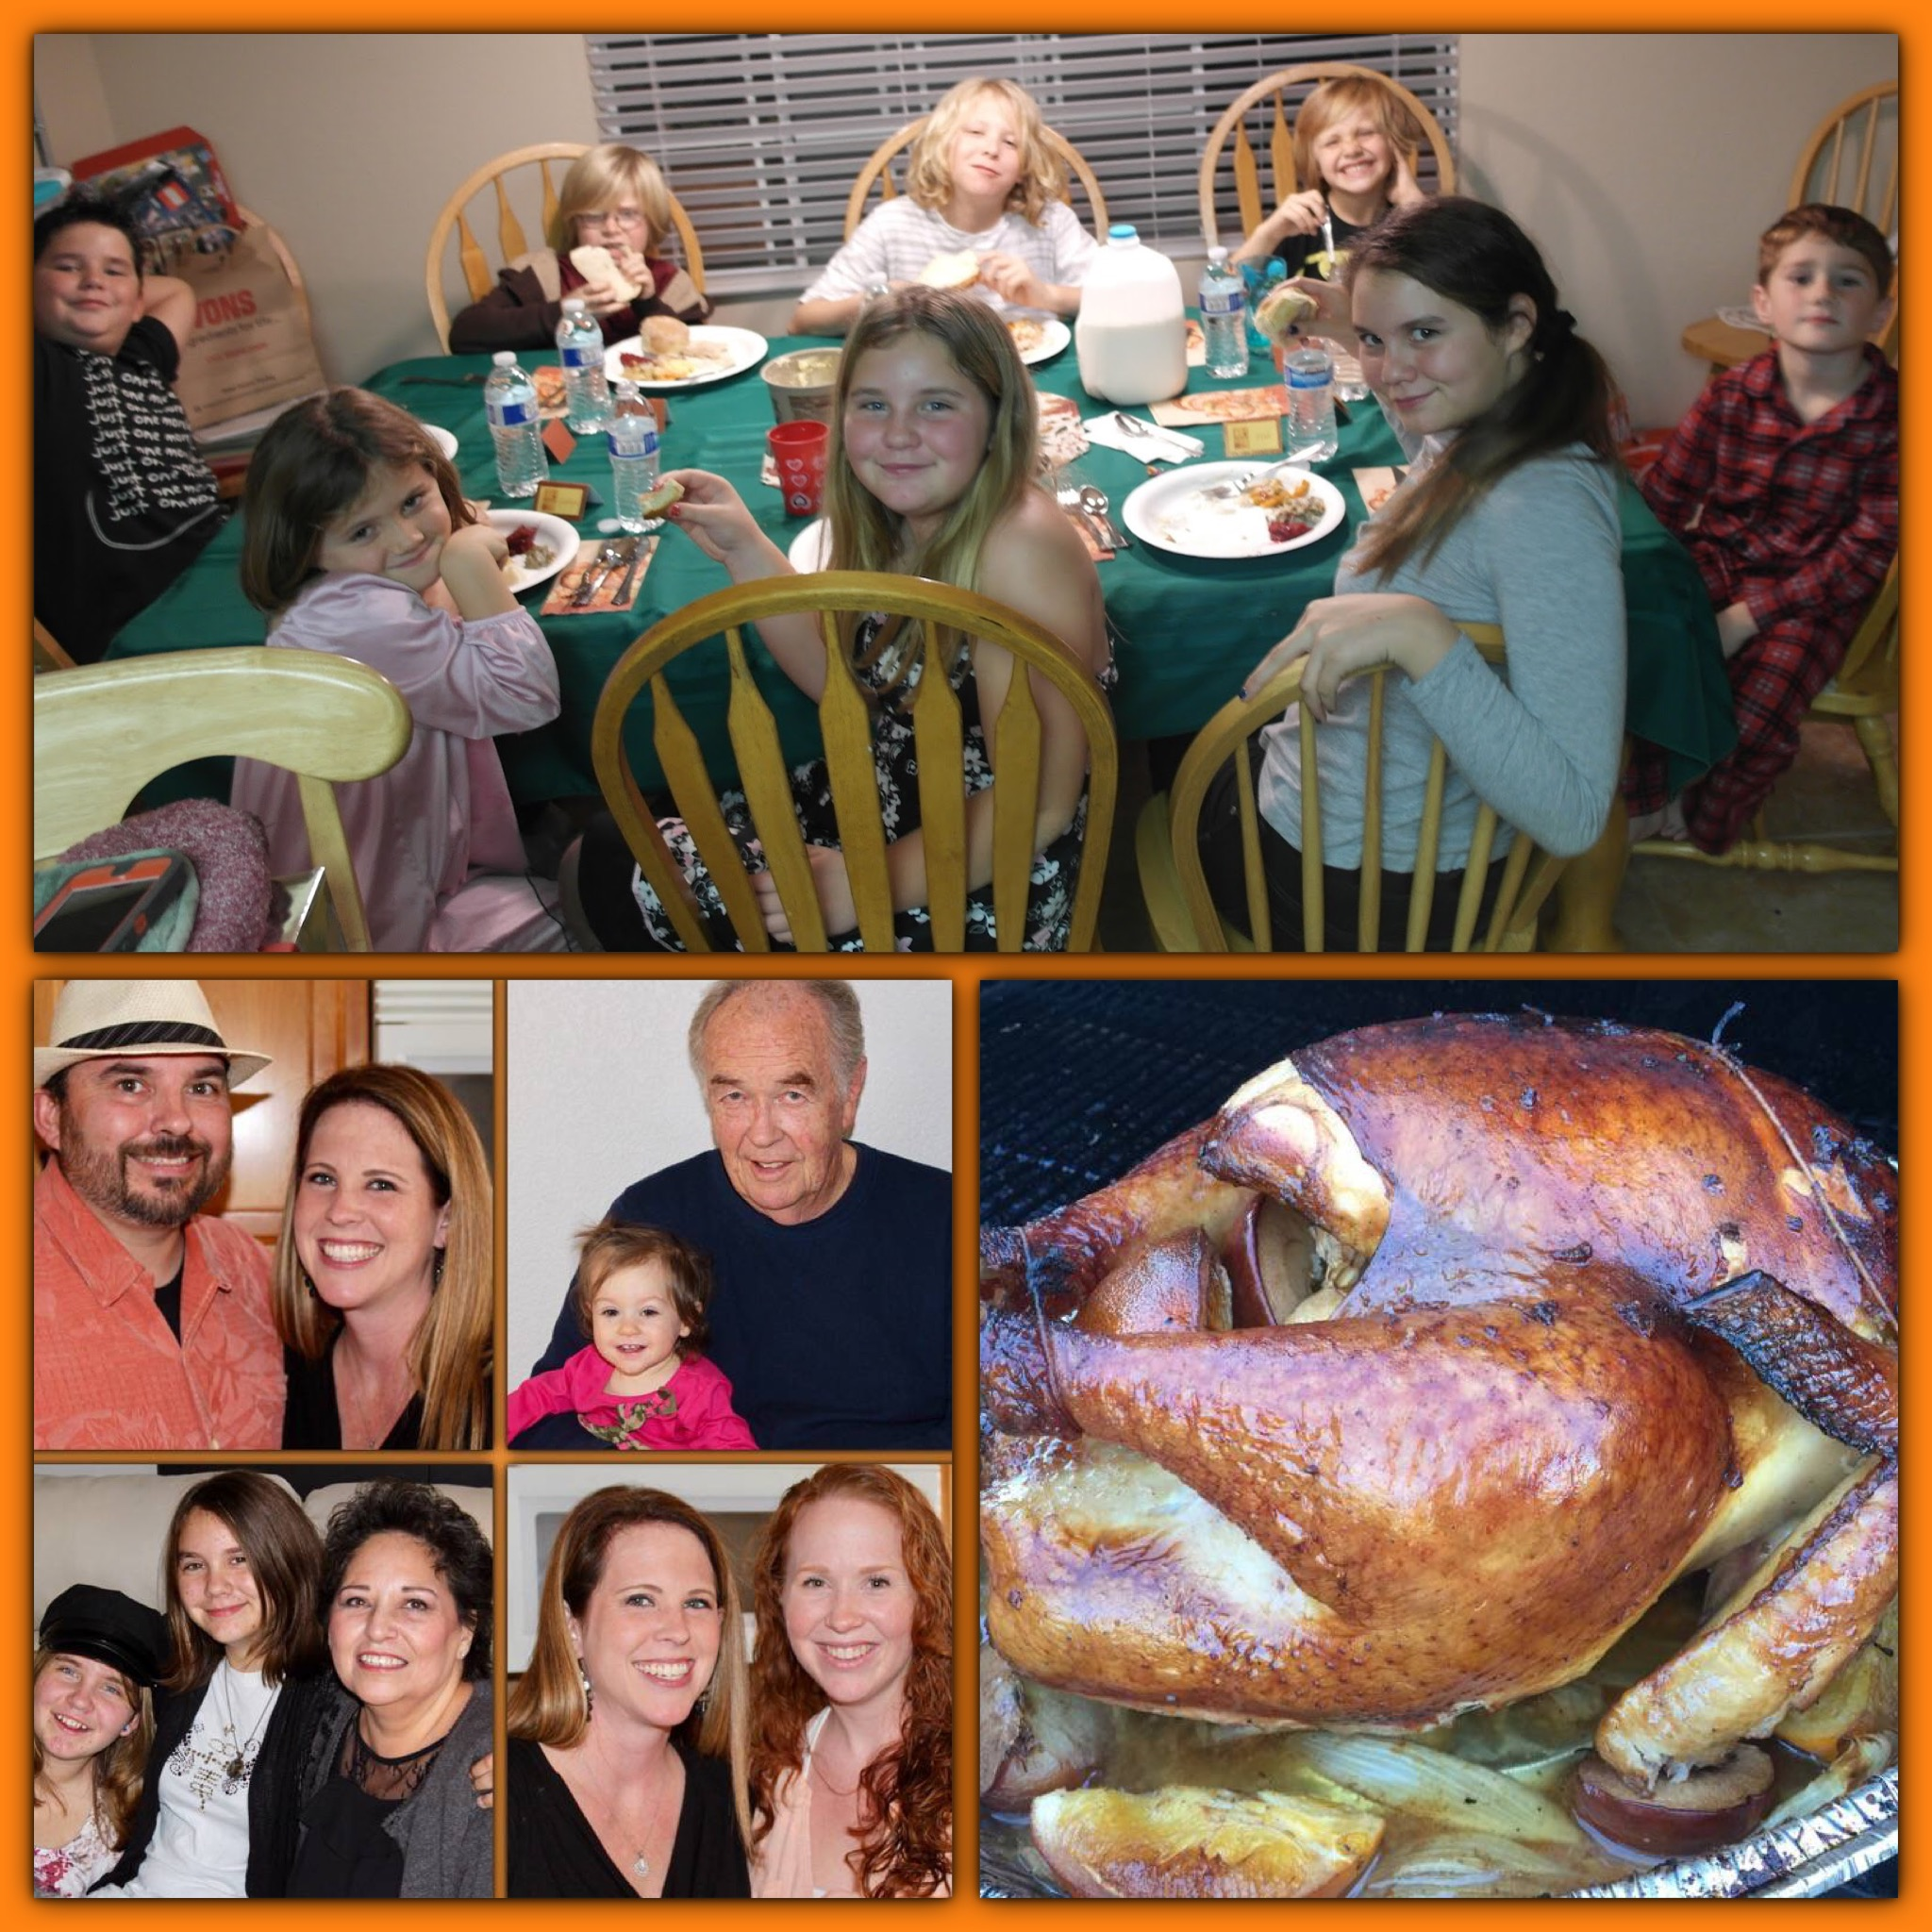 #butterball #thanksgiving #turkey #food #familyfood #ad